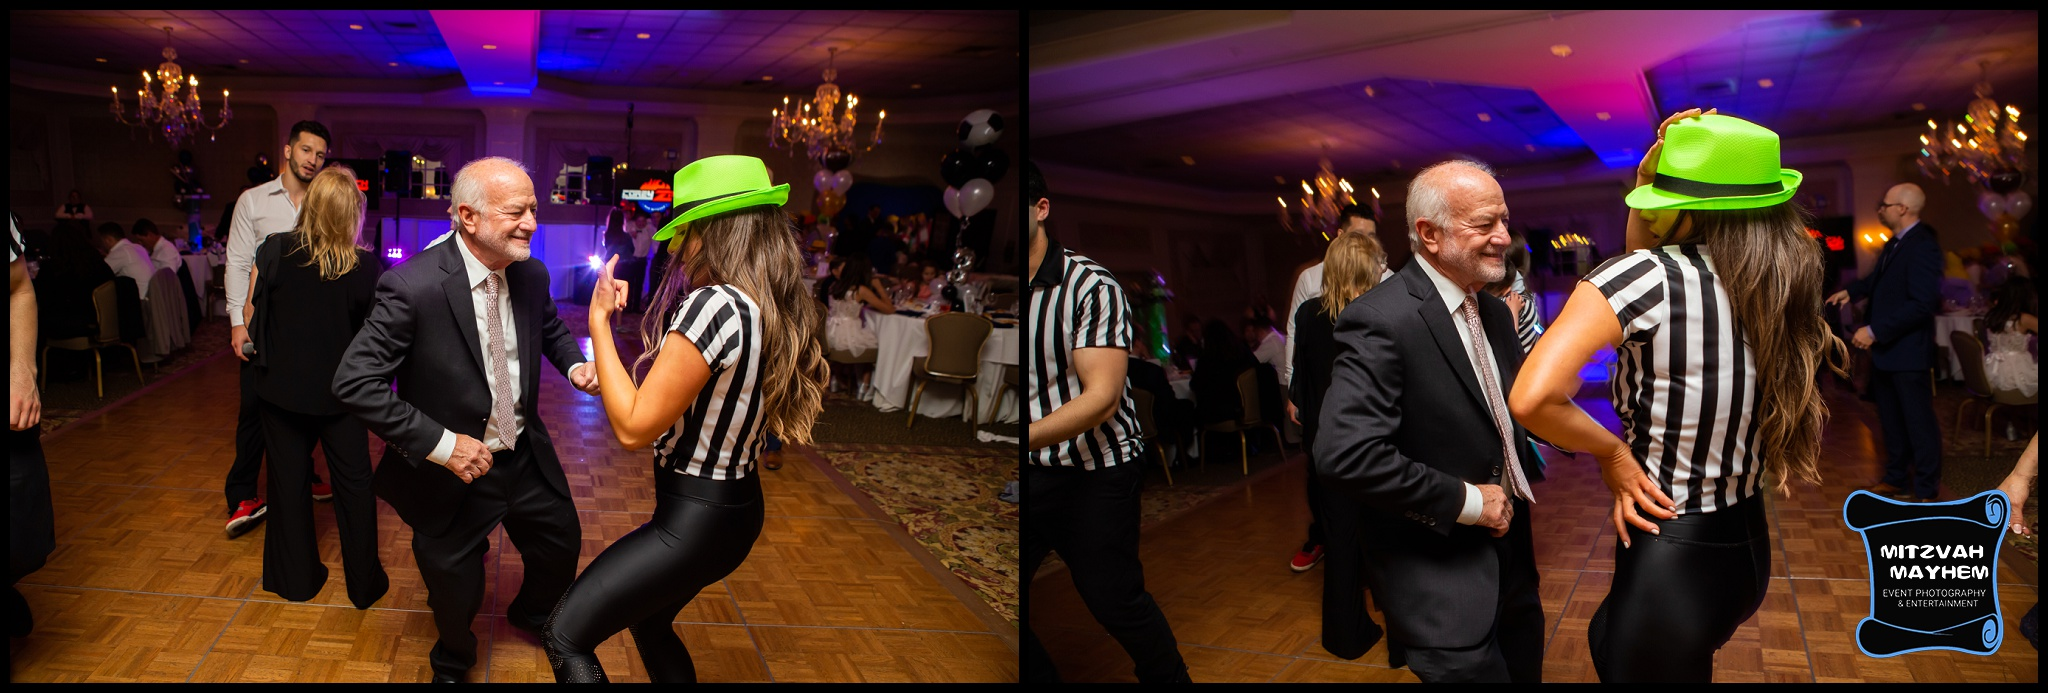 nj-mitzvah-photographer-bridgewater-manorl-19.JPG